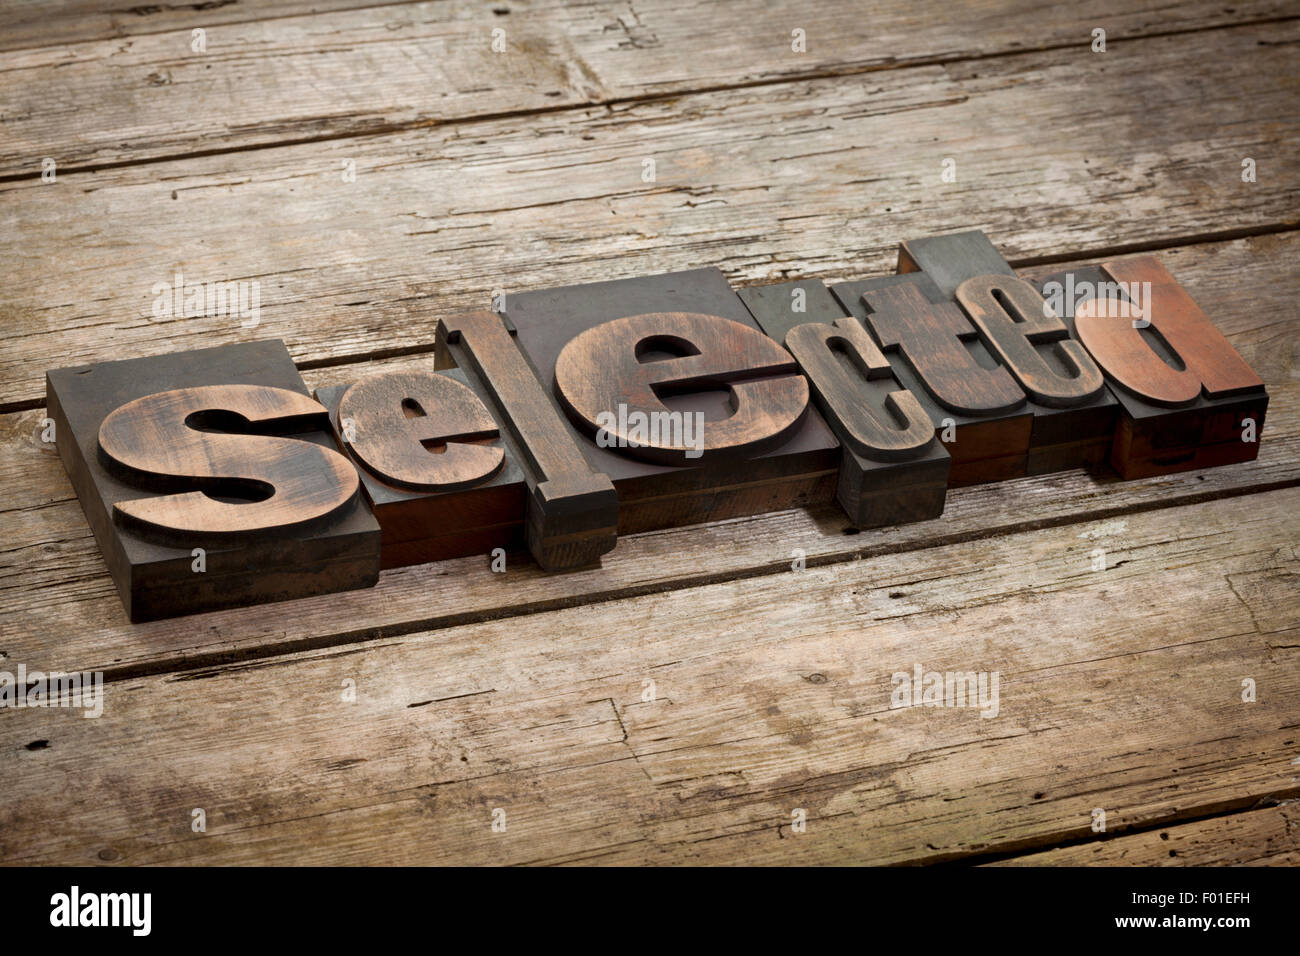 selected, word written with vintage letterpress printing blocks, angled view, rustic wooden background - Stock Image